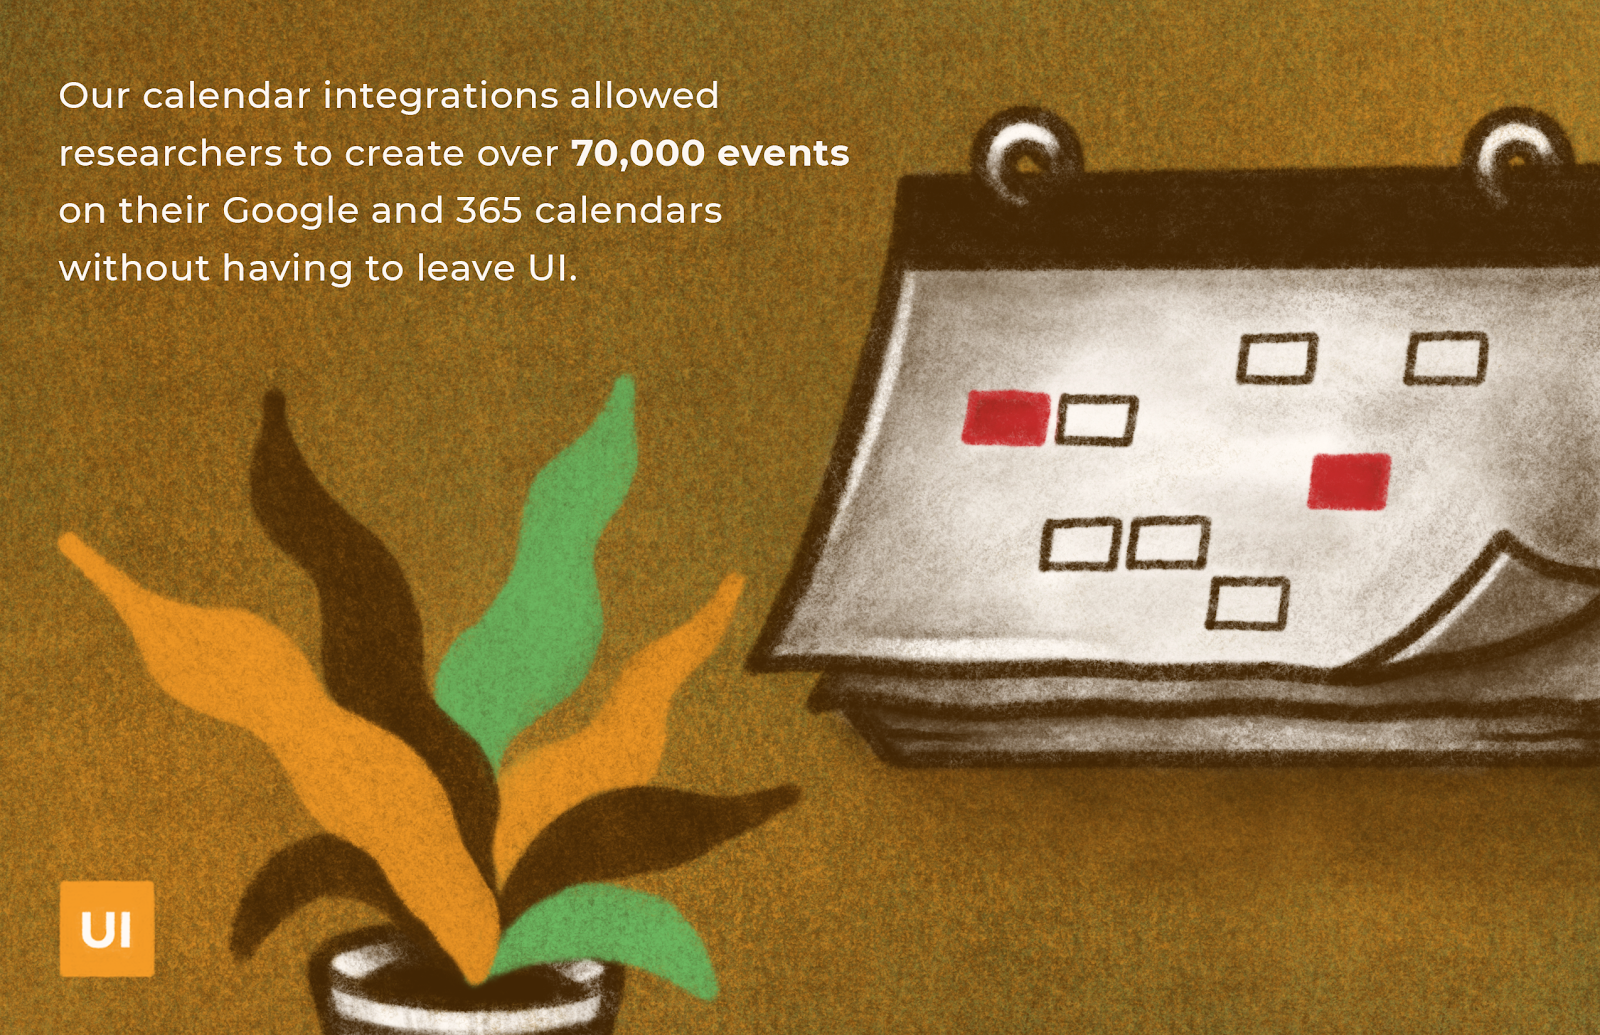 Stylized wall calendar and plant. Text about User Interviews calendar integrations.